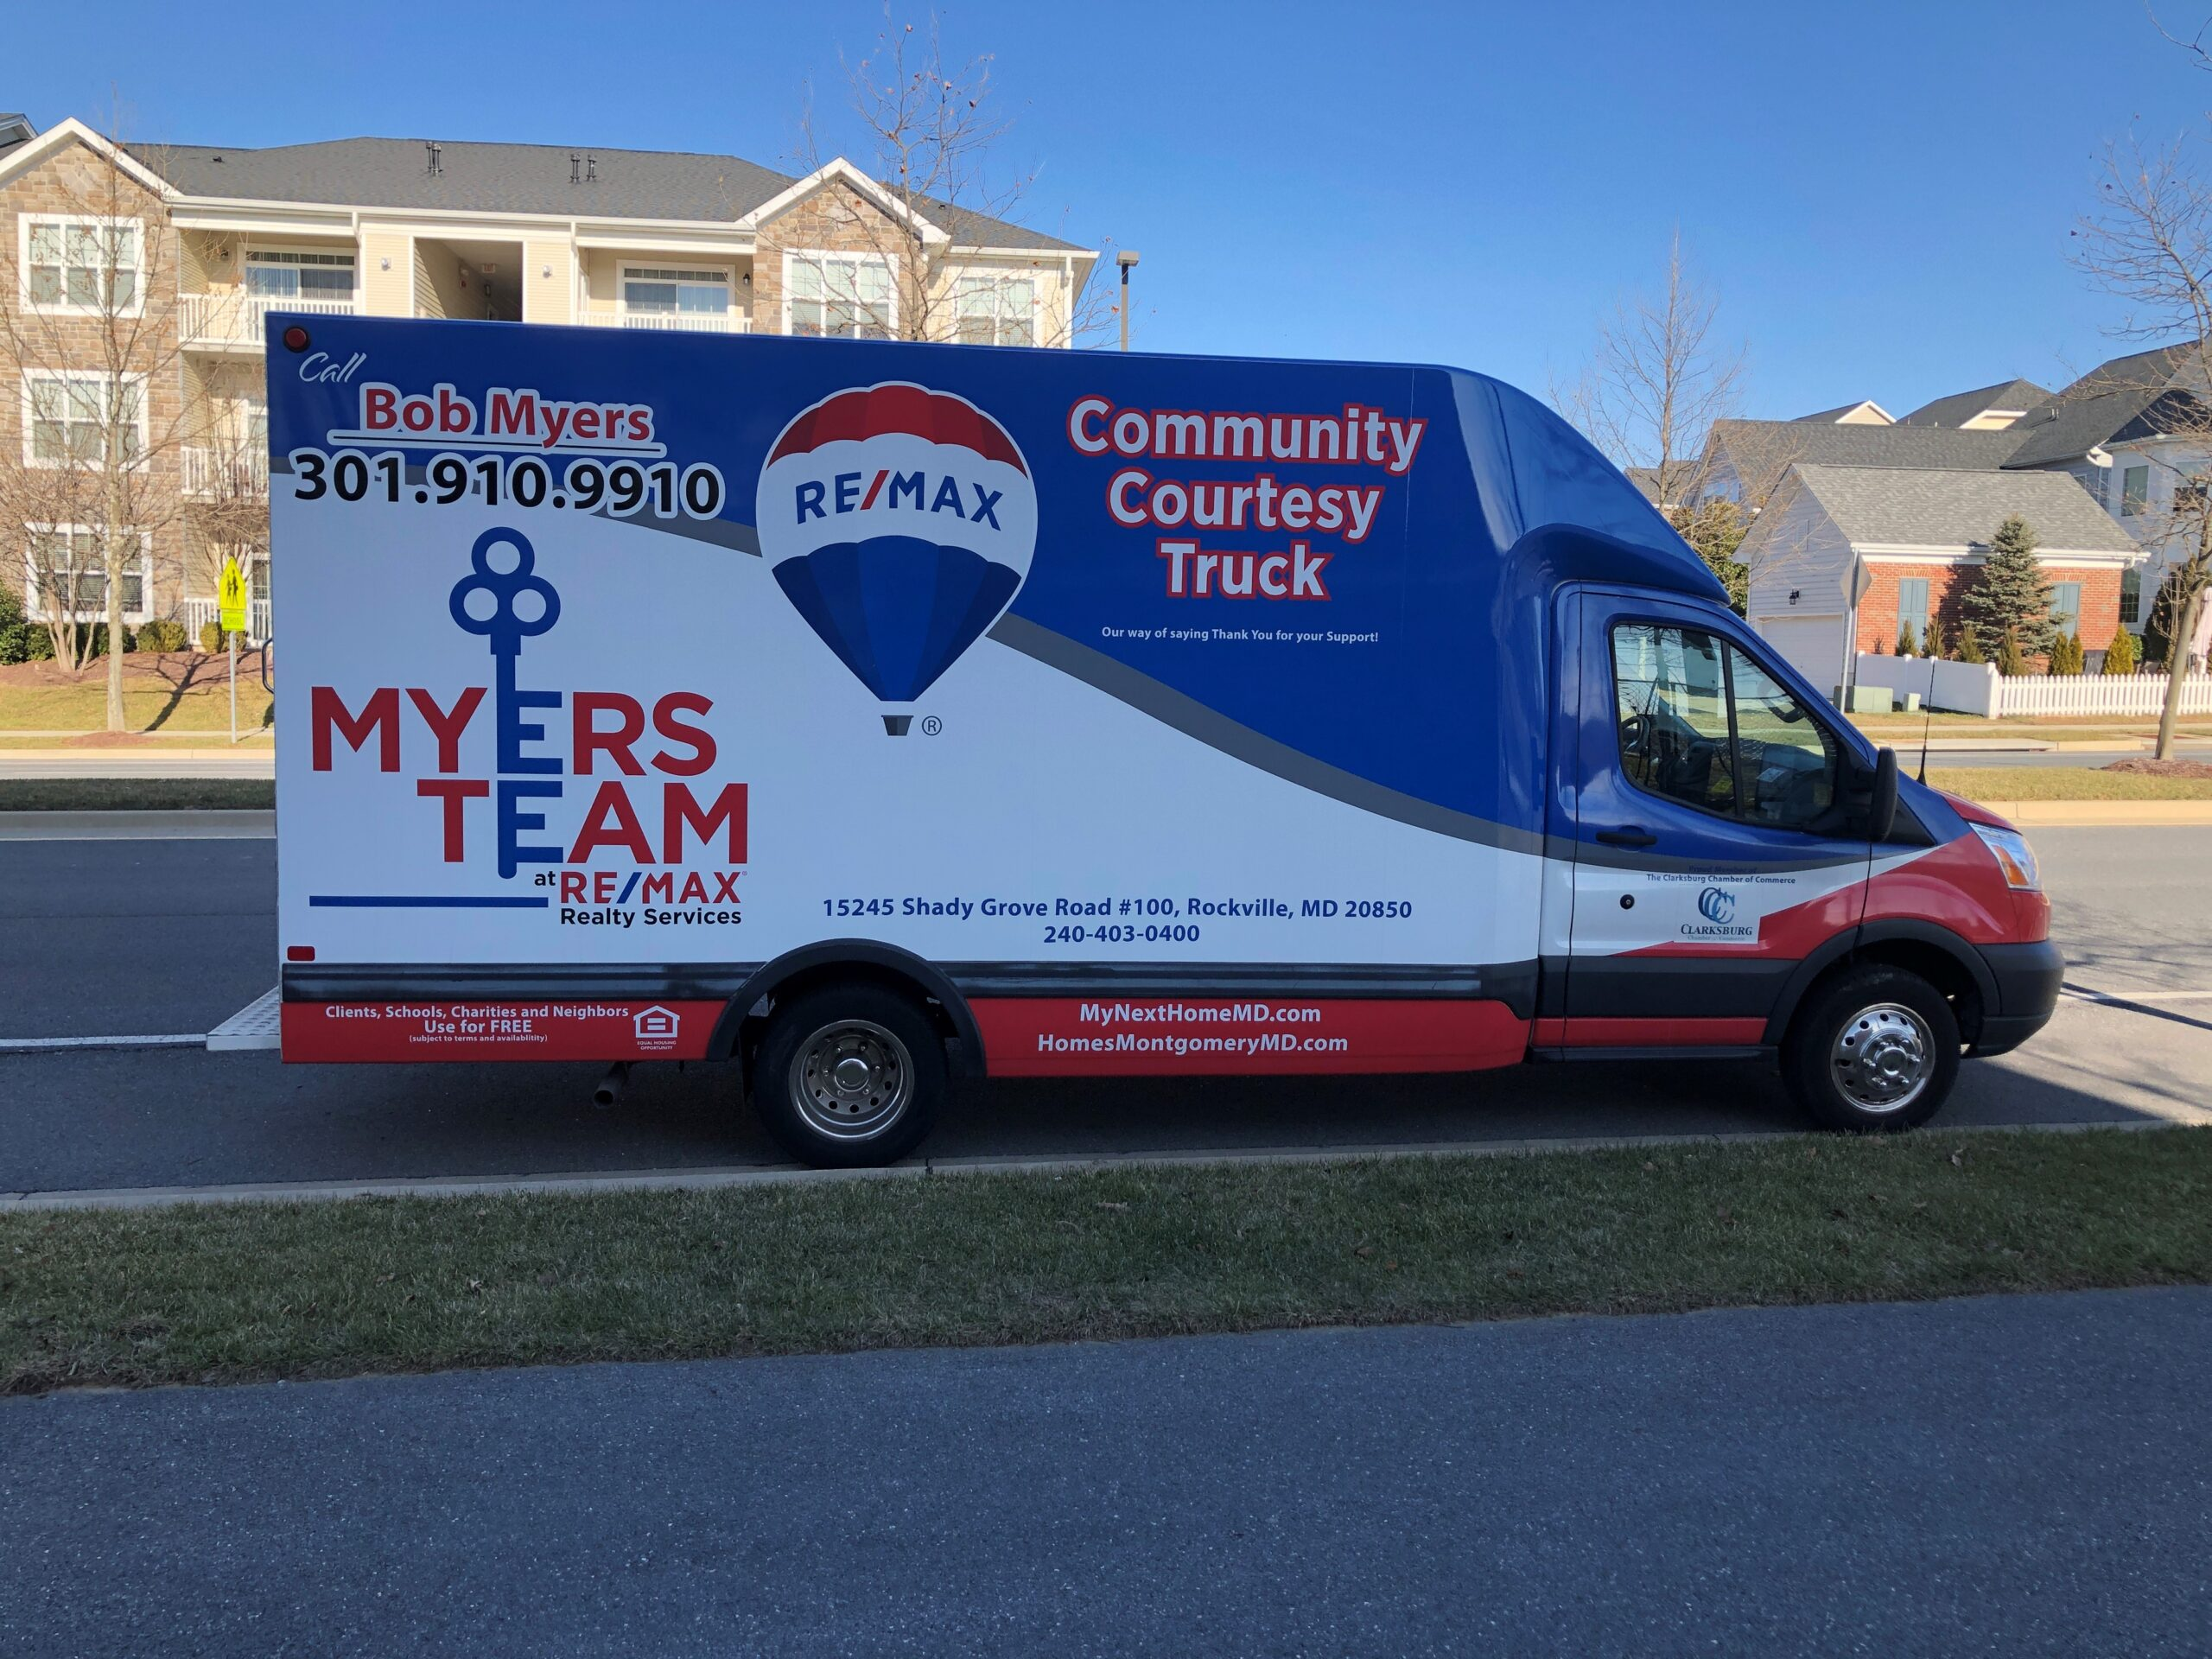 The Myers Team Moving Truck